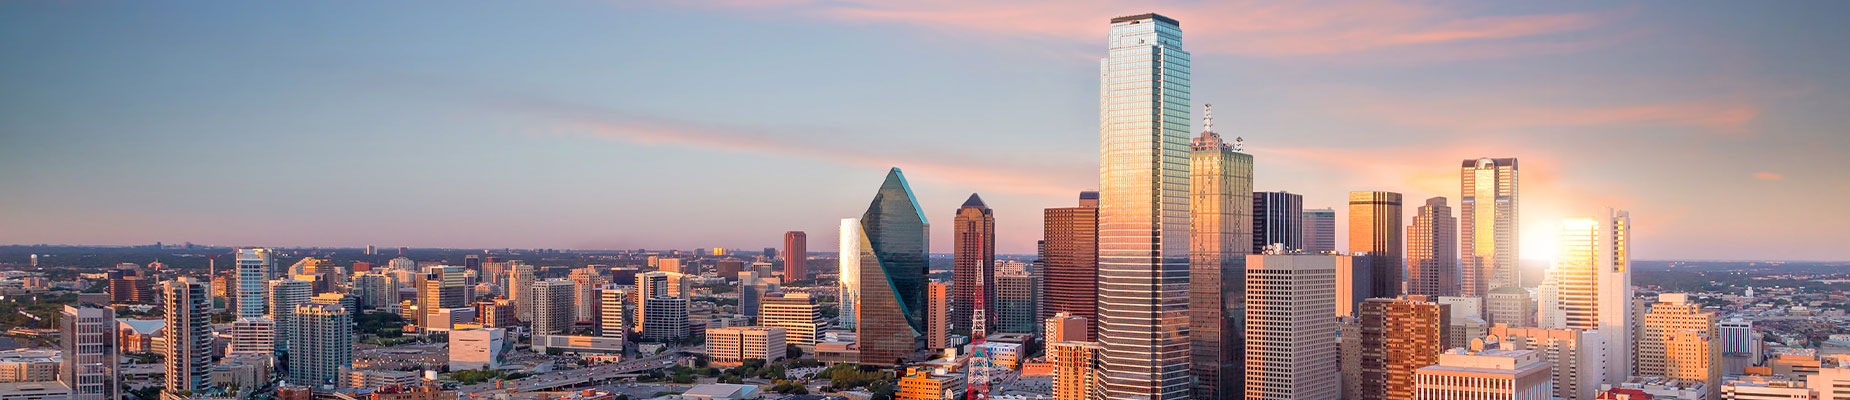 Dallas, TX Human Resources Consulting and Outsourcing